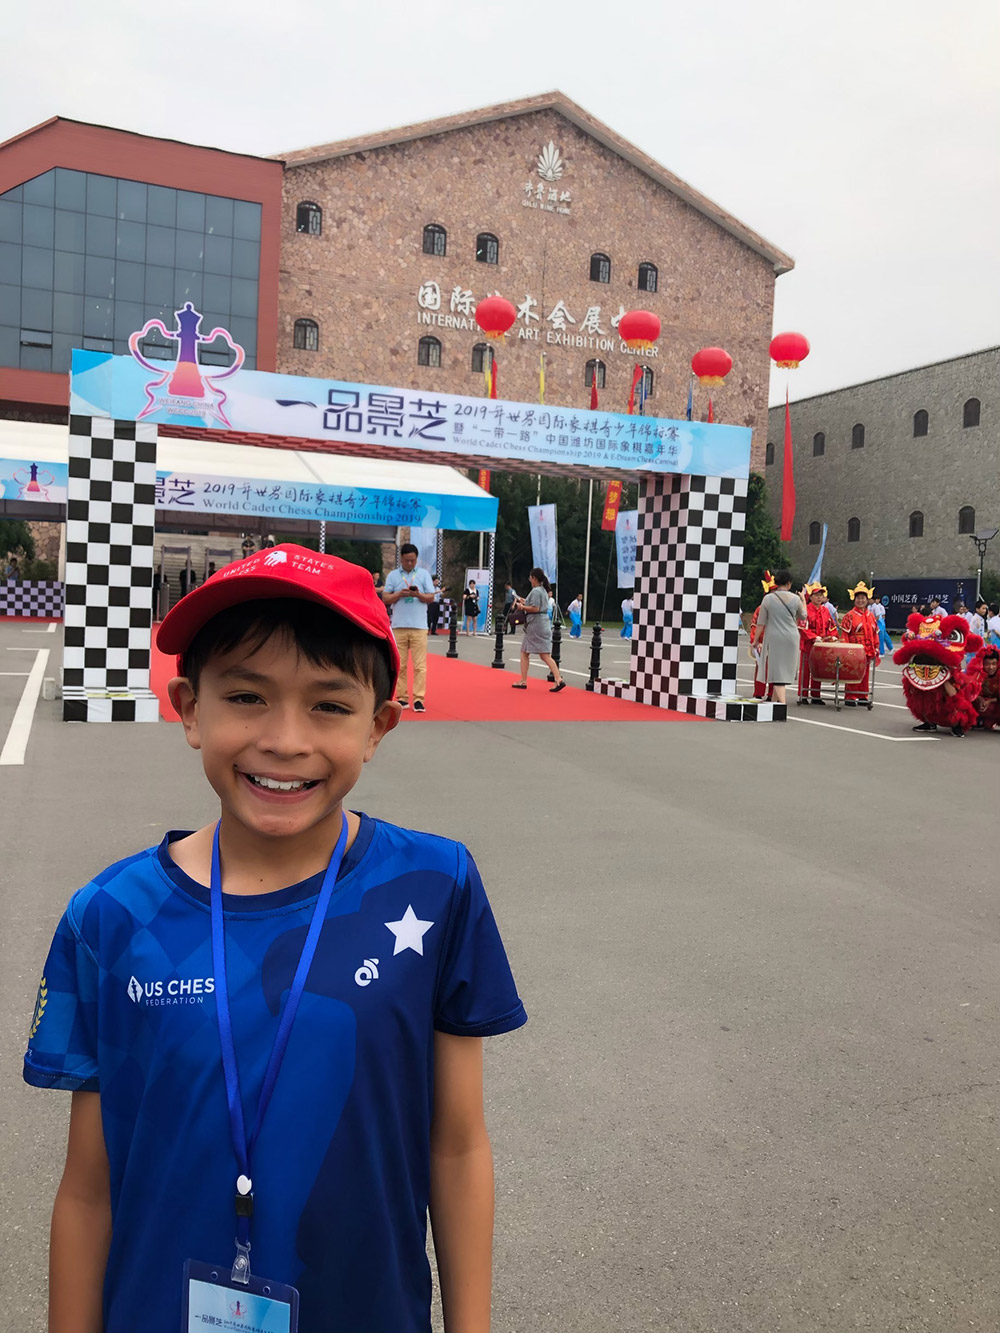 Oliver gets ready to enter the venue for the World Cadet Chess Championship in Weifang, China. August, 2019